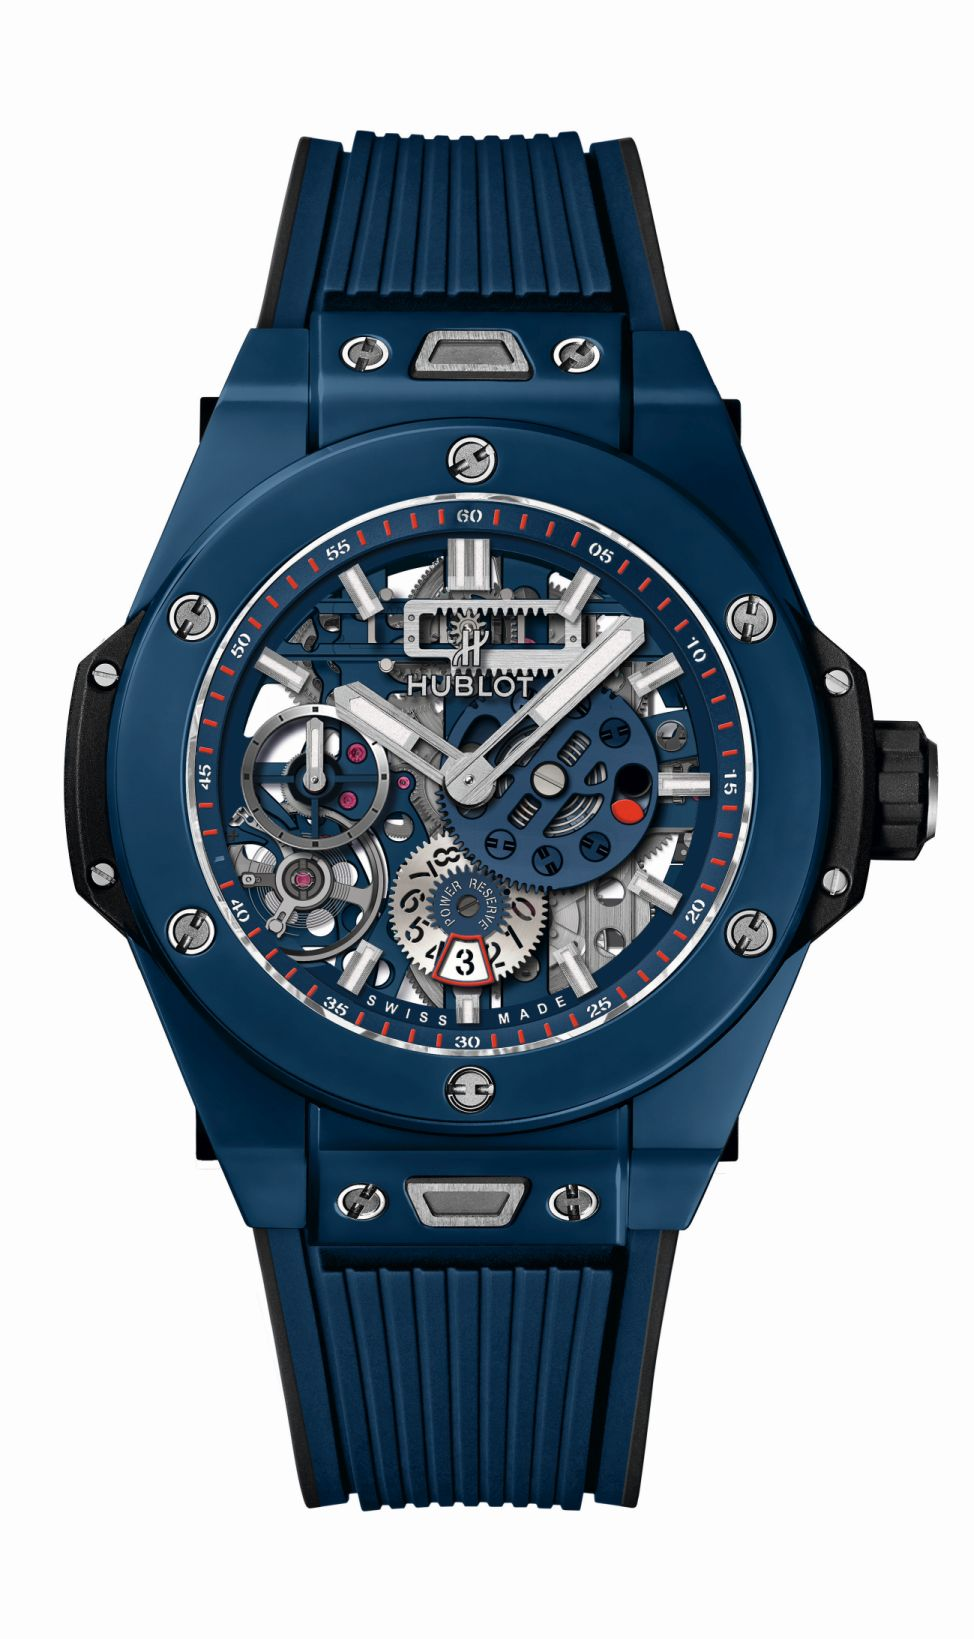 Hublot Big Bang Meca-10 Blue Ceramic, Hublot Meca-10